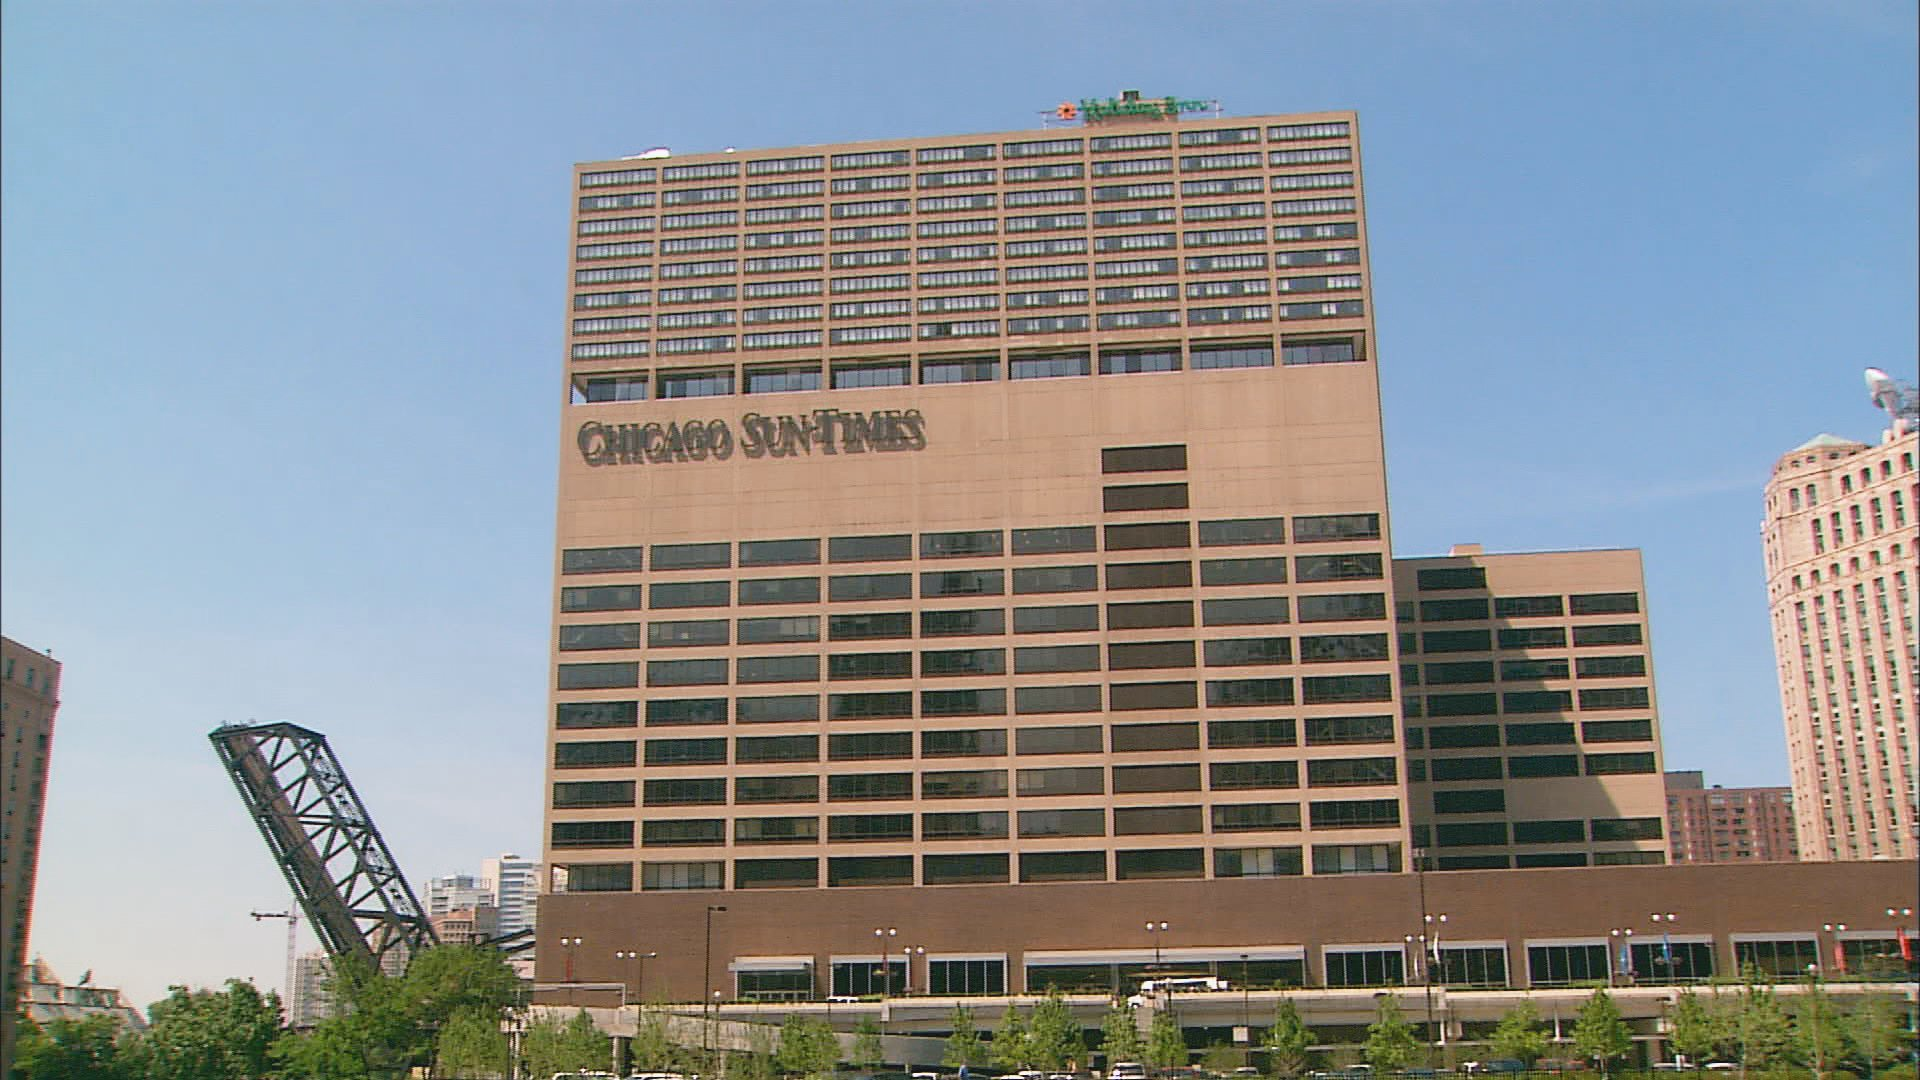 Sports betting a growth target for Rivers Casino operator